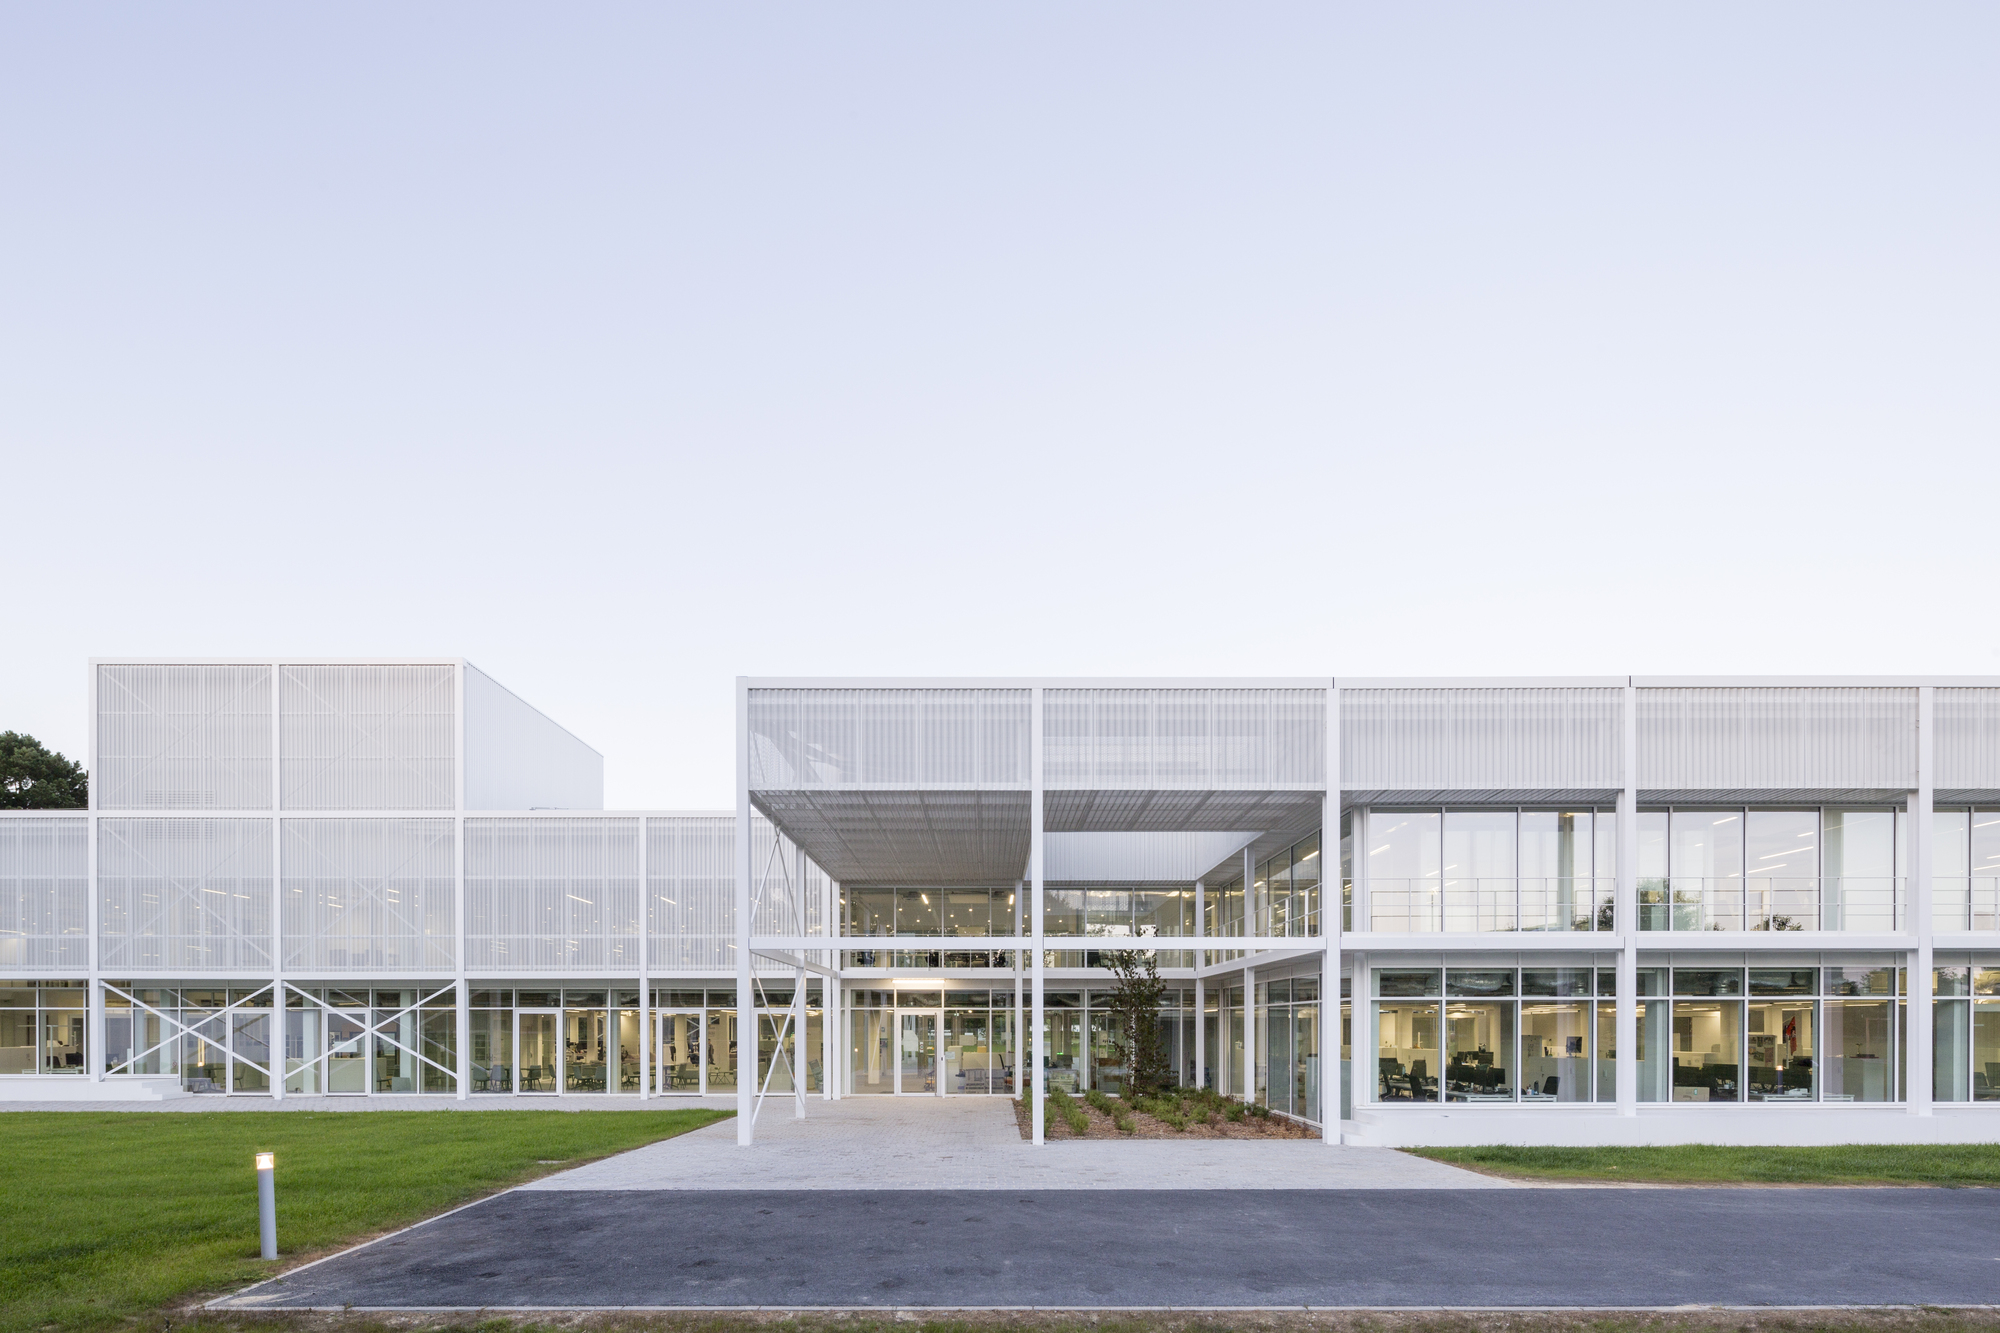 Office buildings architecture and design | ArchDaily